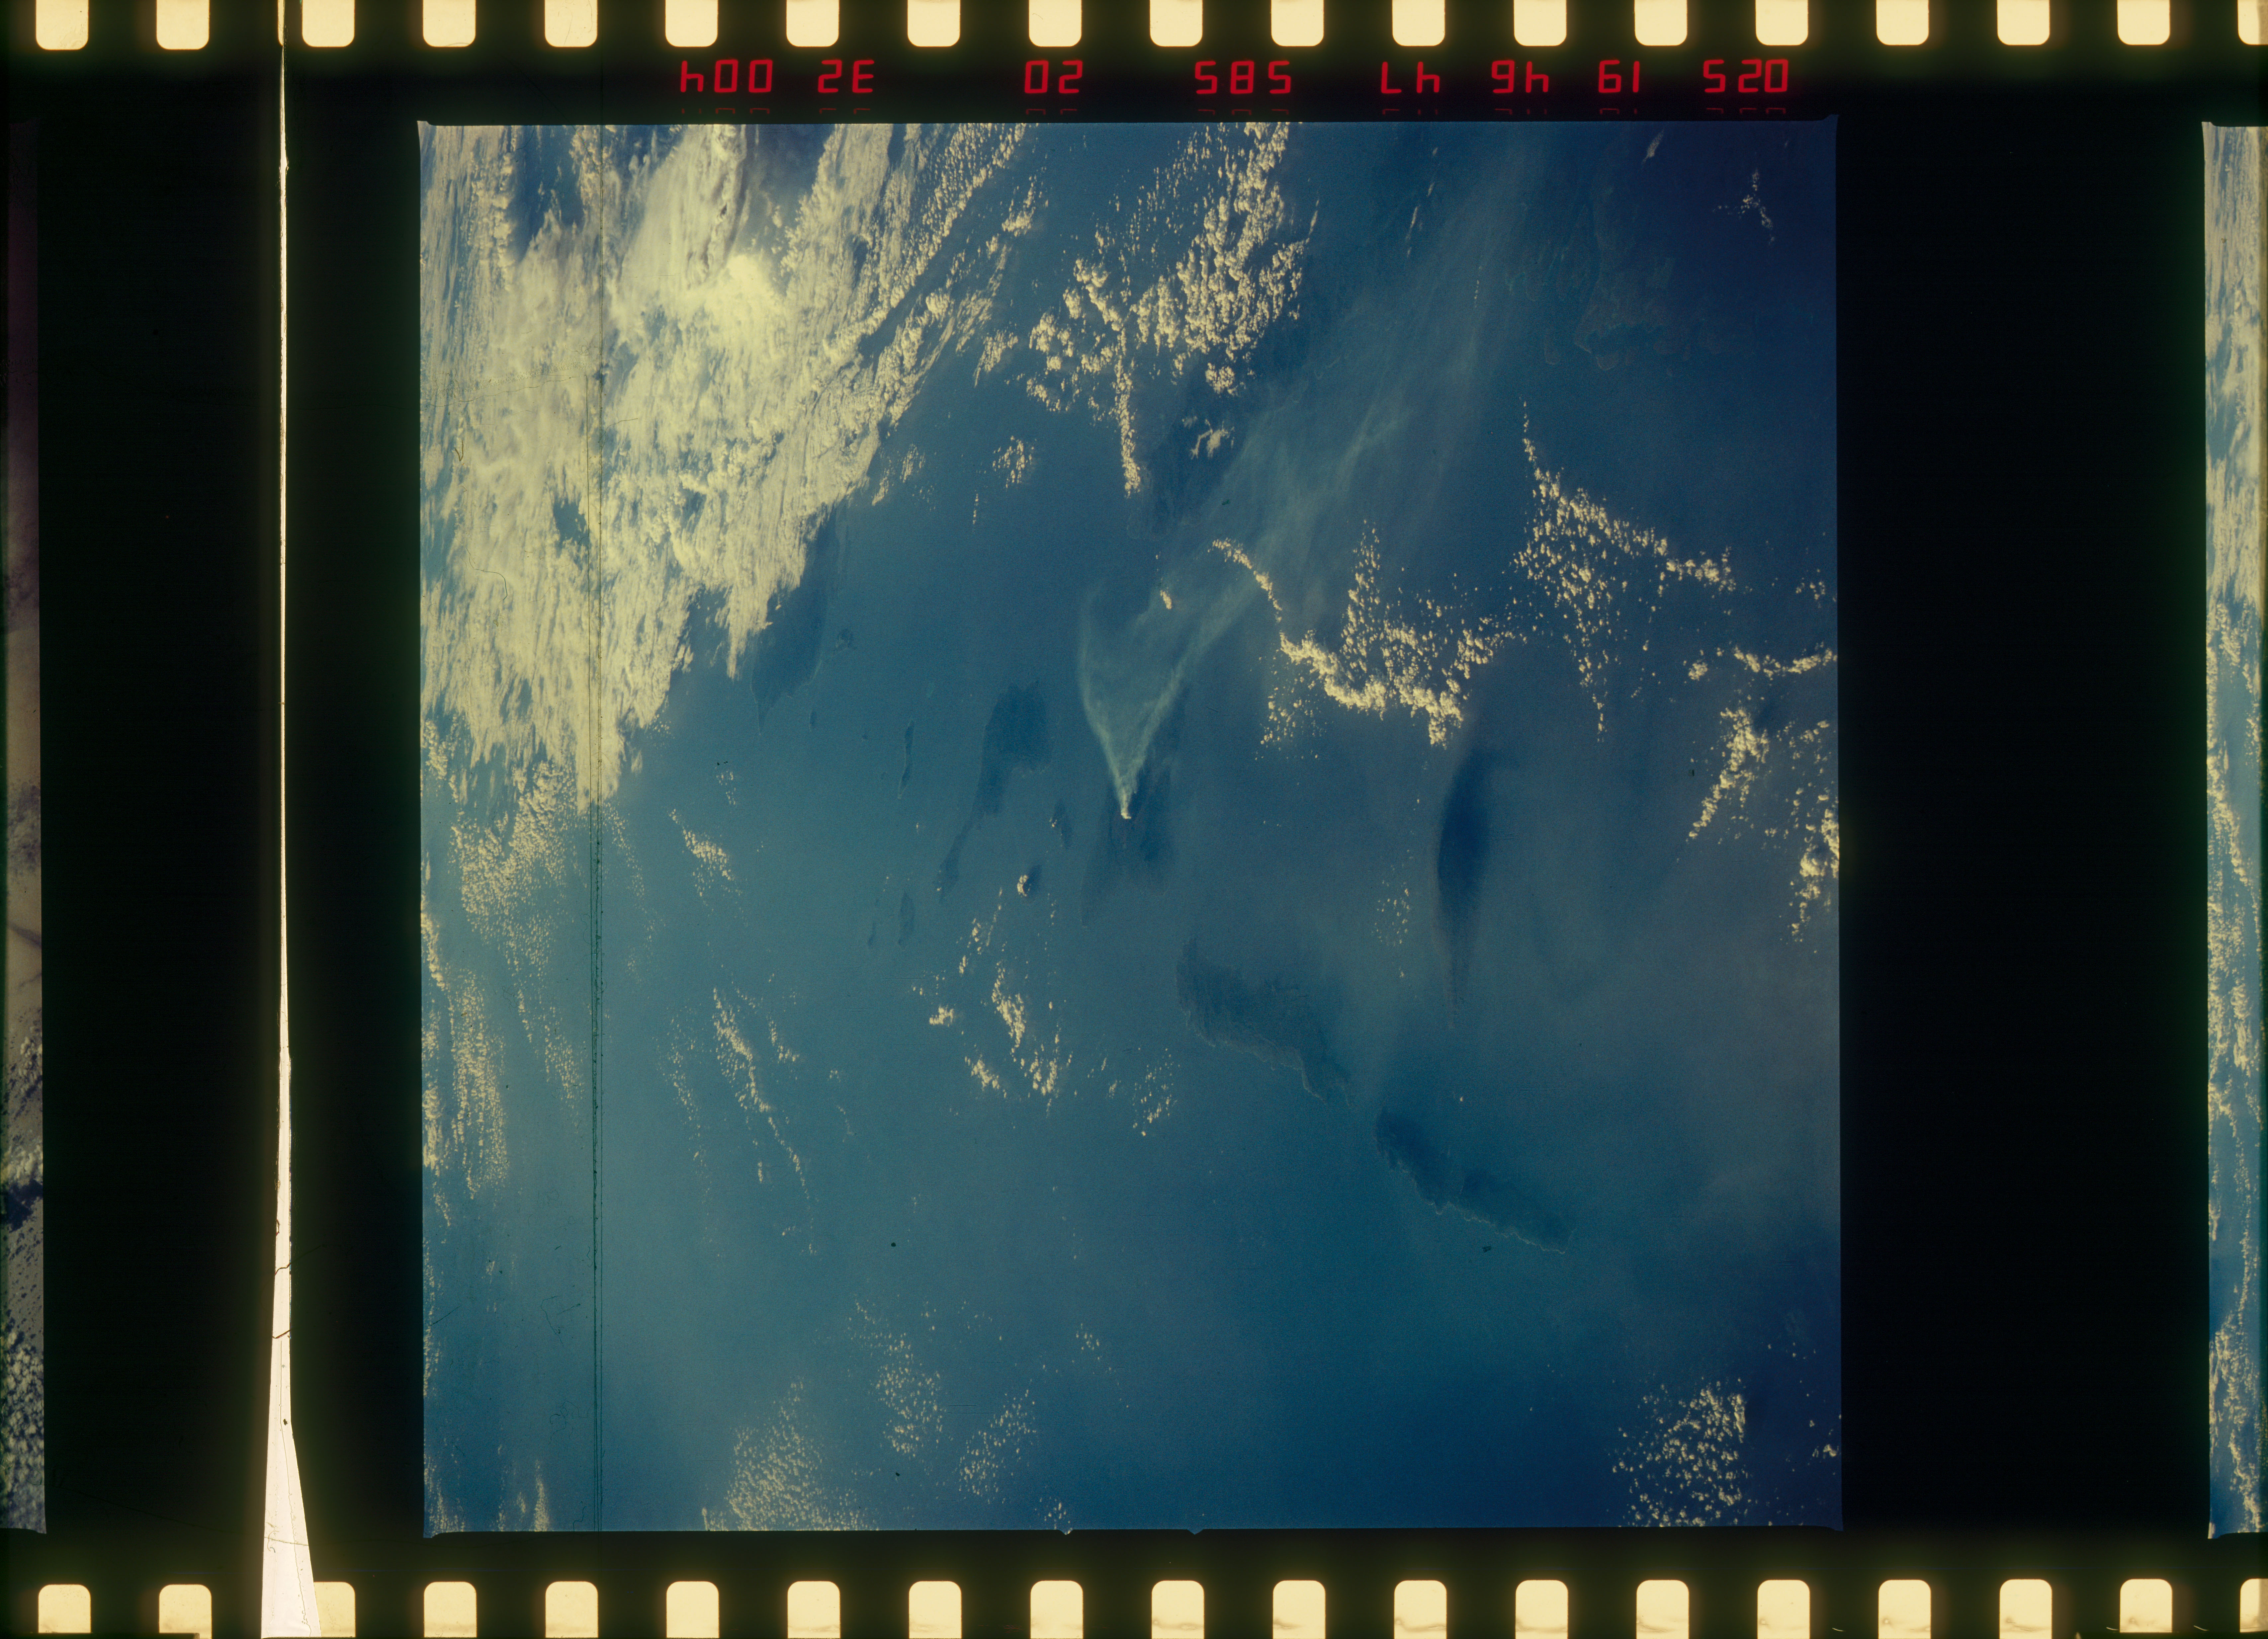 STS51C-32-004 - STS-51C - STS-51C earth observations